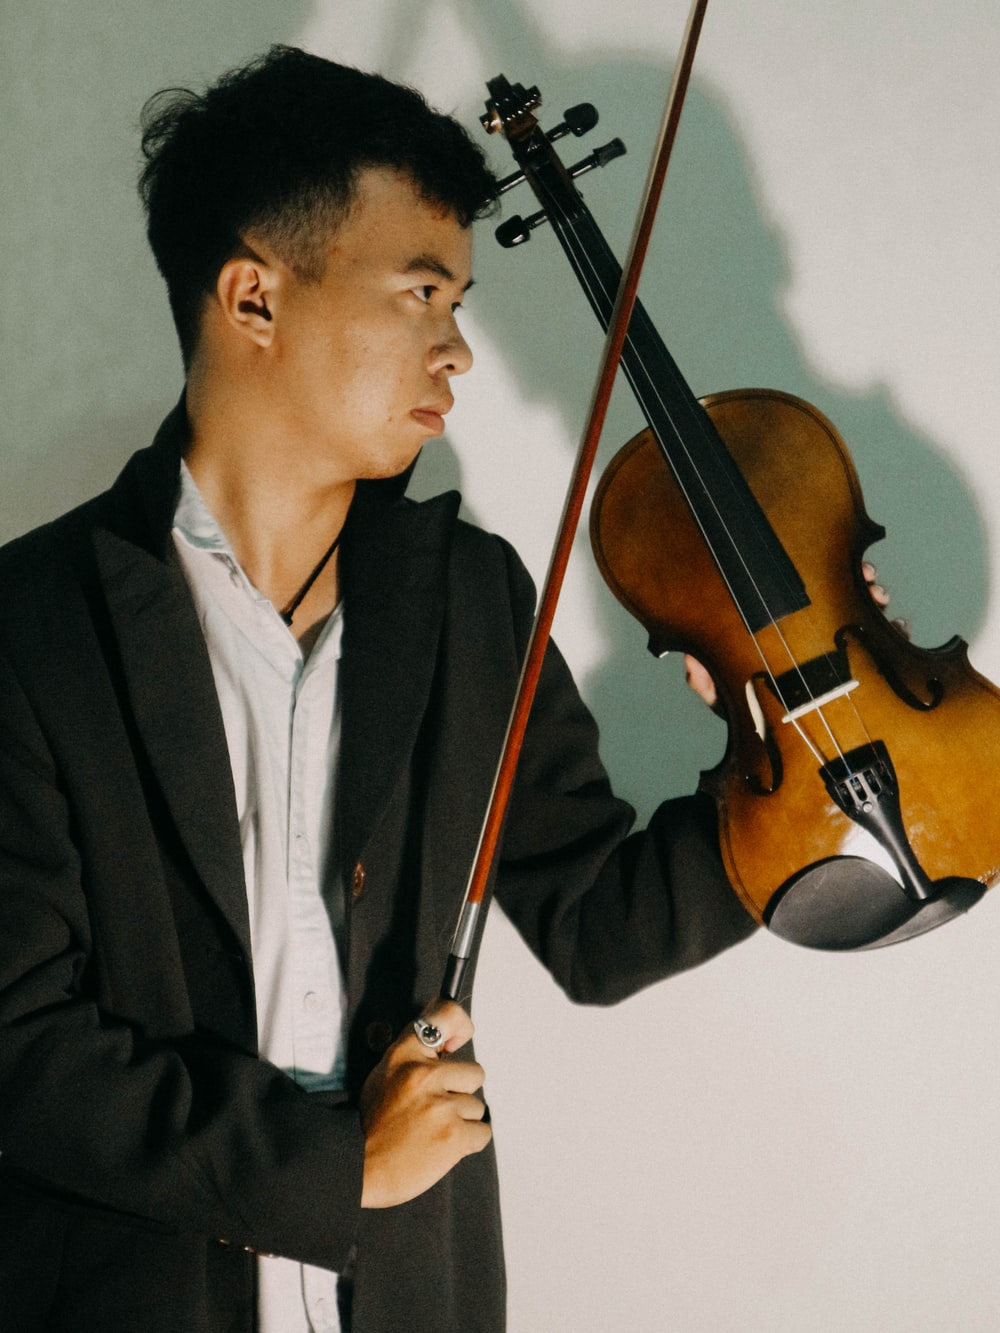 man holding fiddle